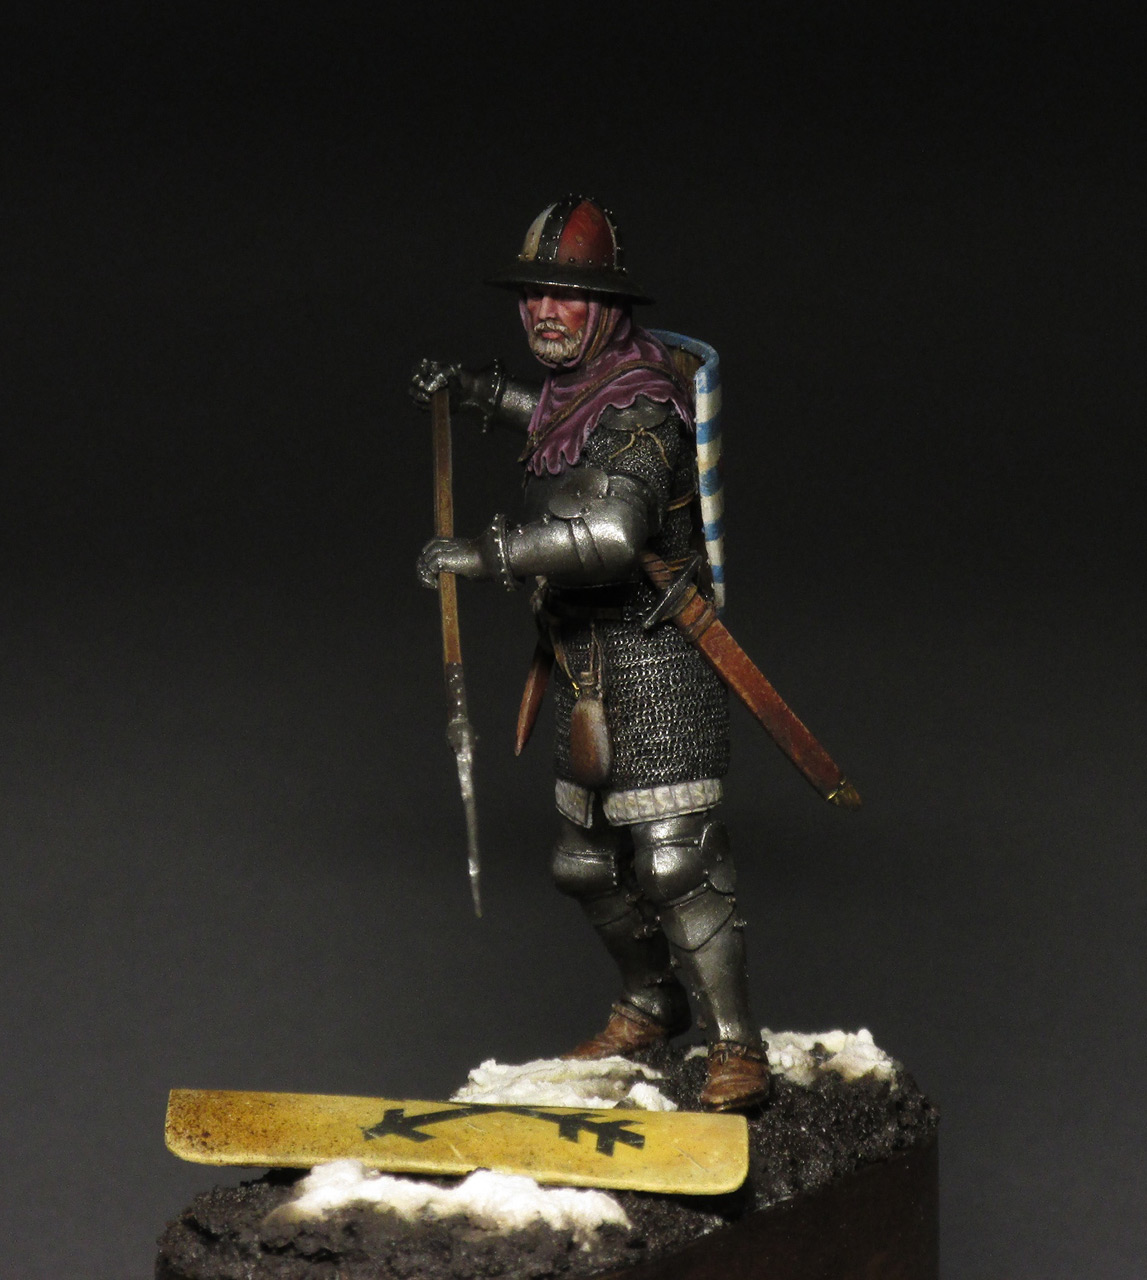 Figures: Medieval infantryman, photo #9